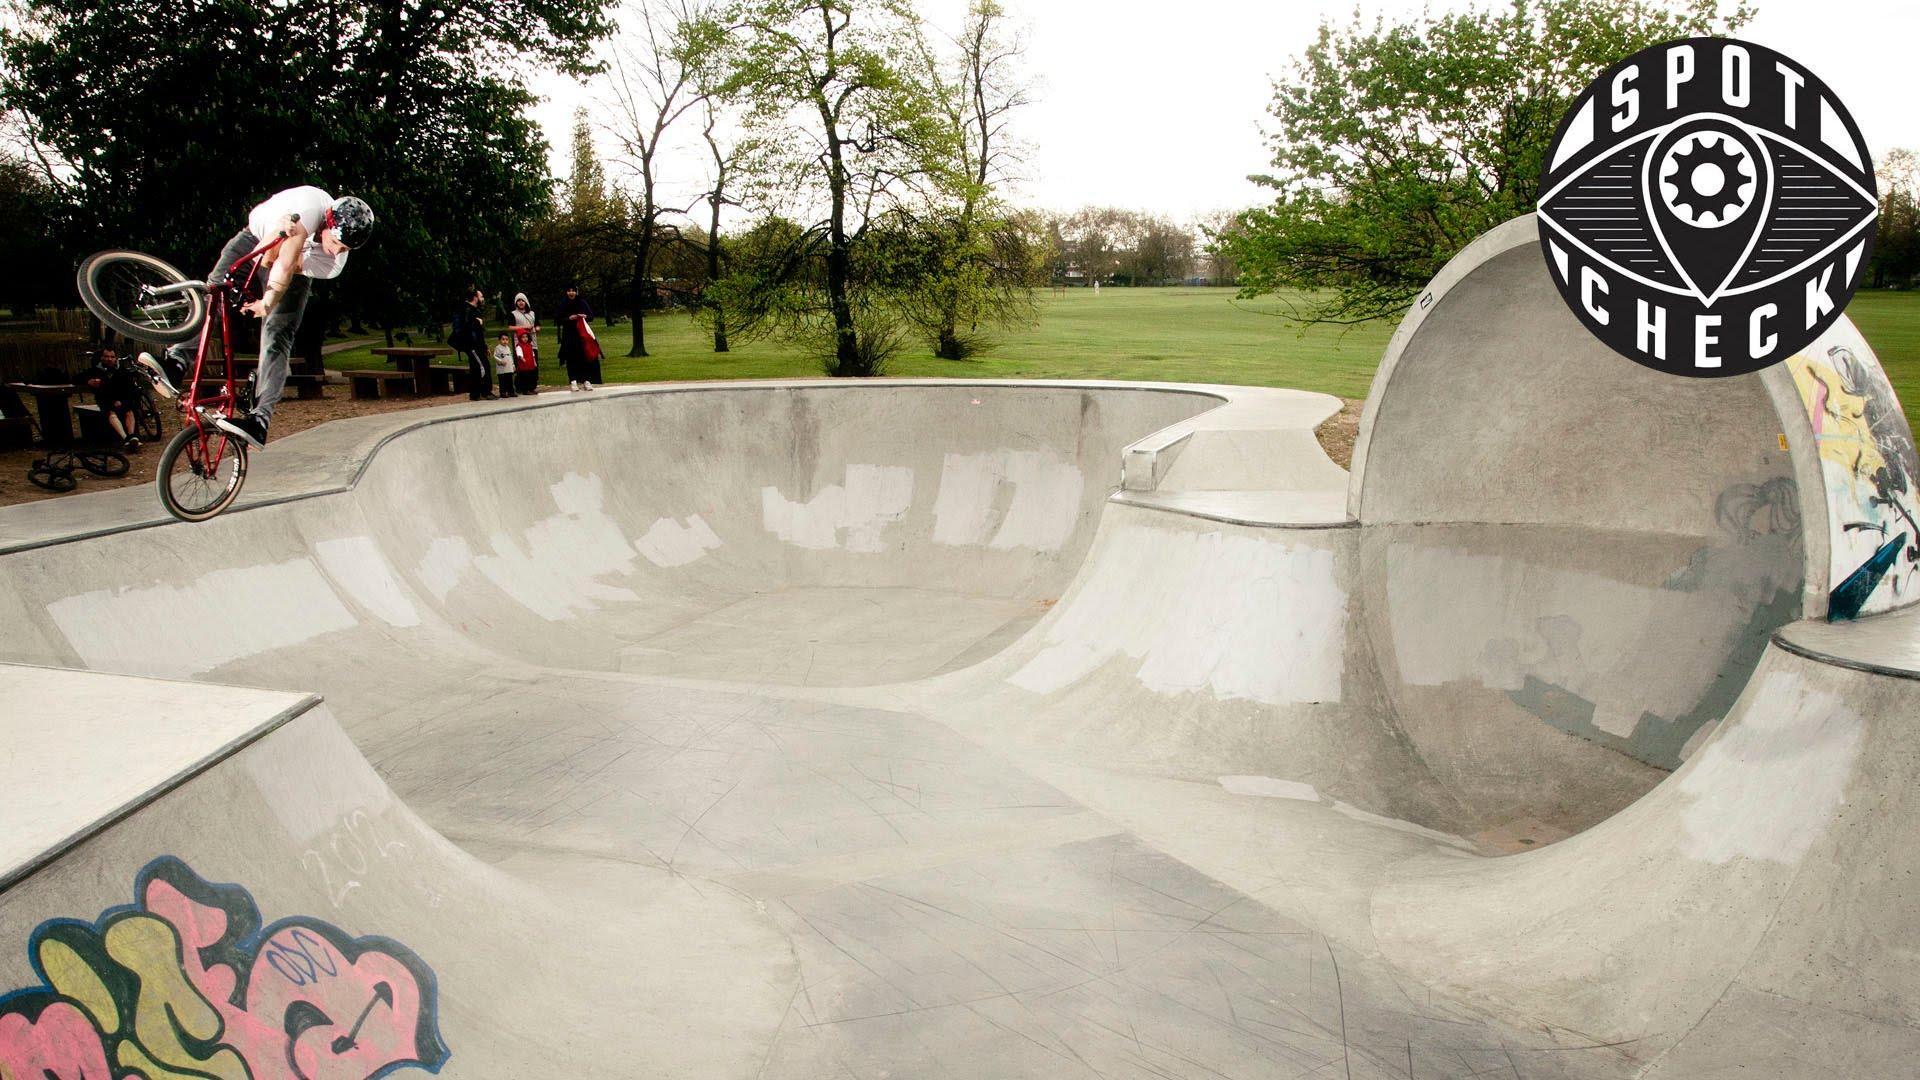 SPOT CHECK: Victoria Park Skatepark, London